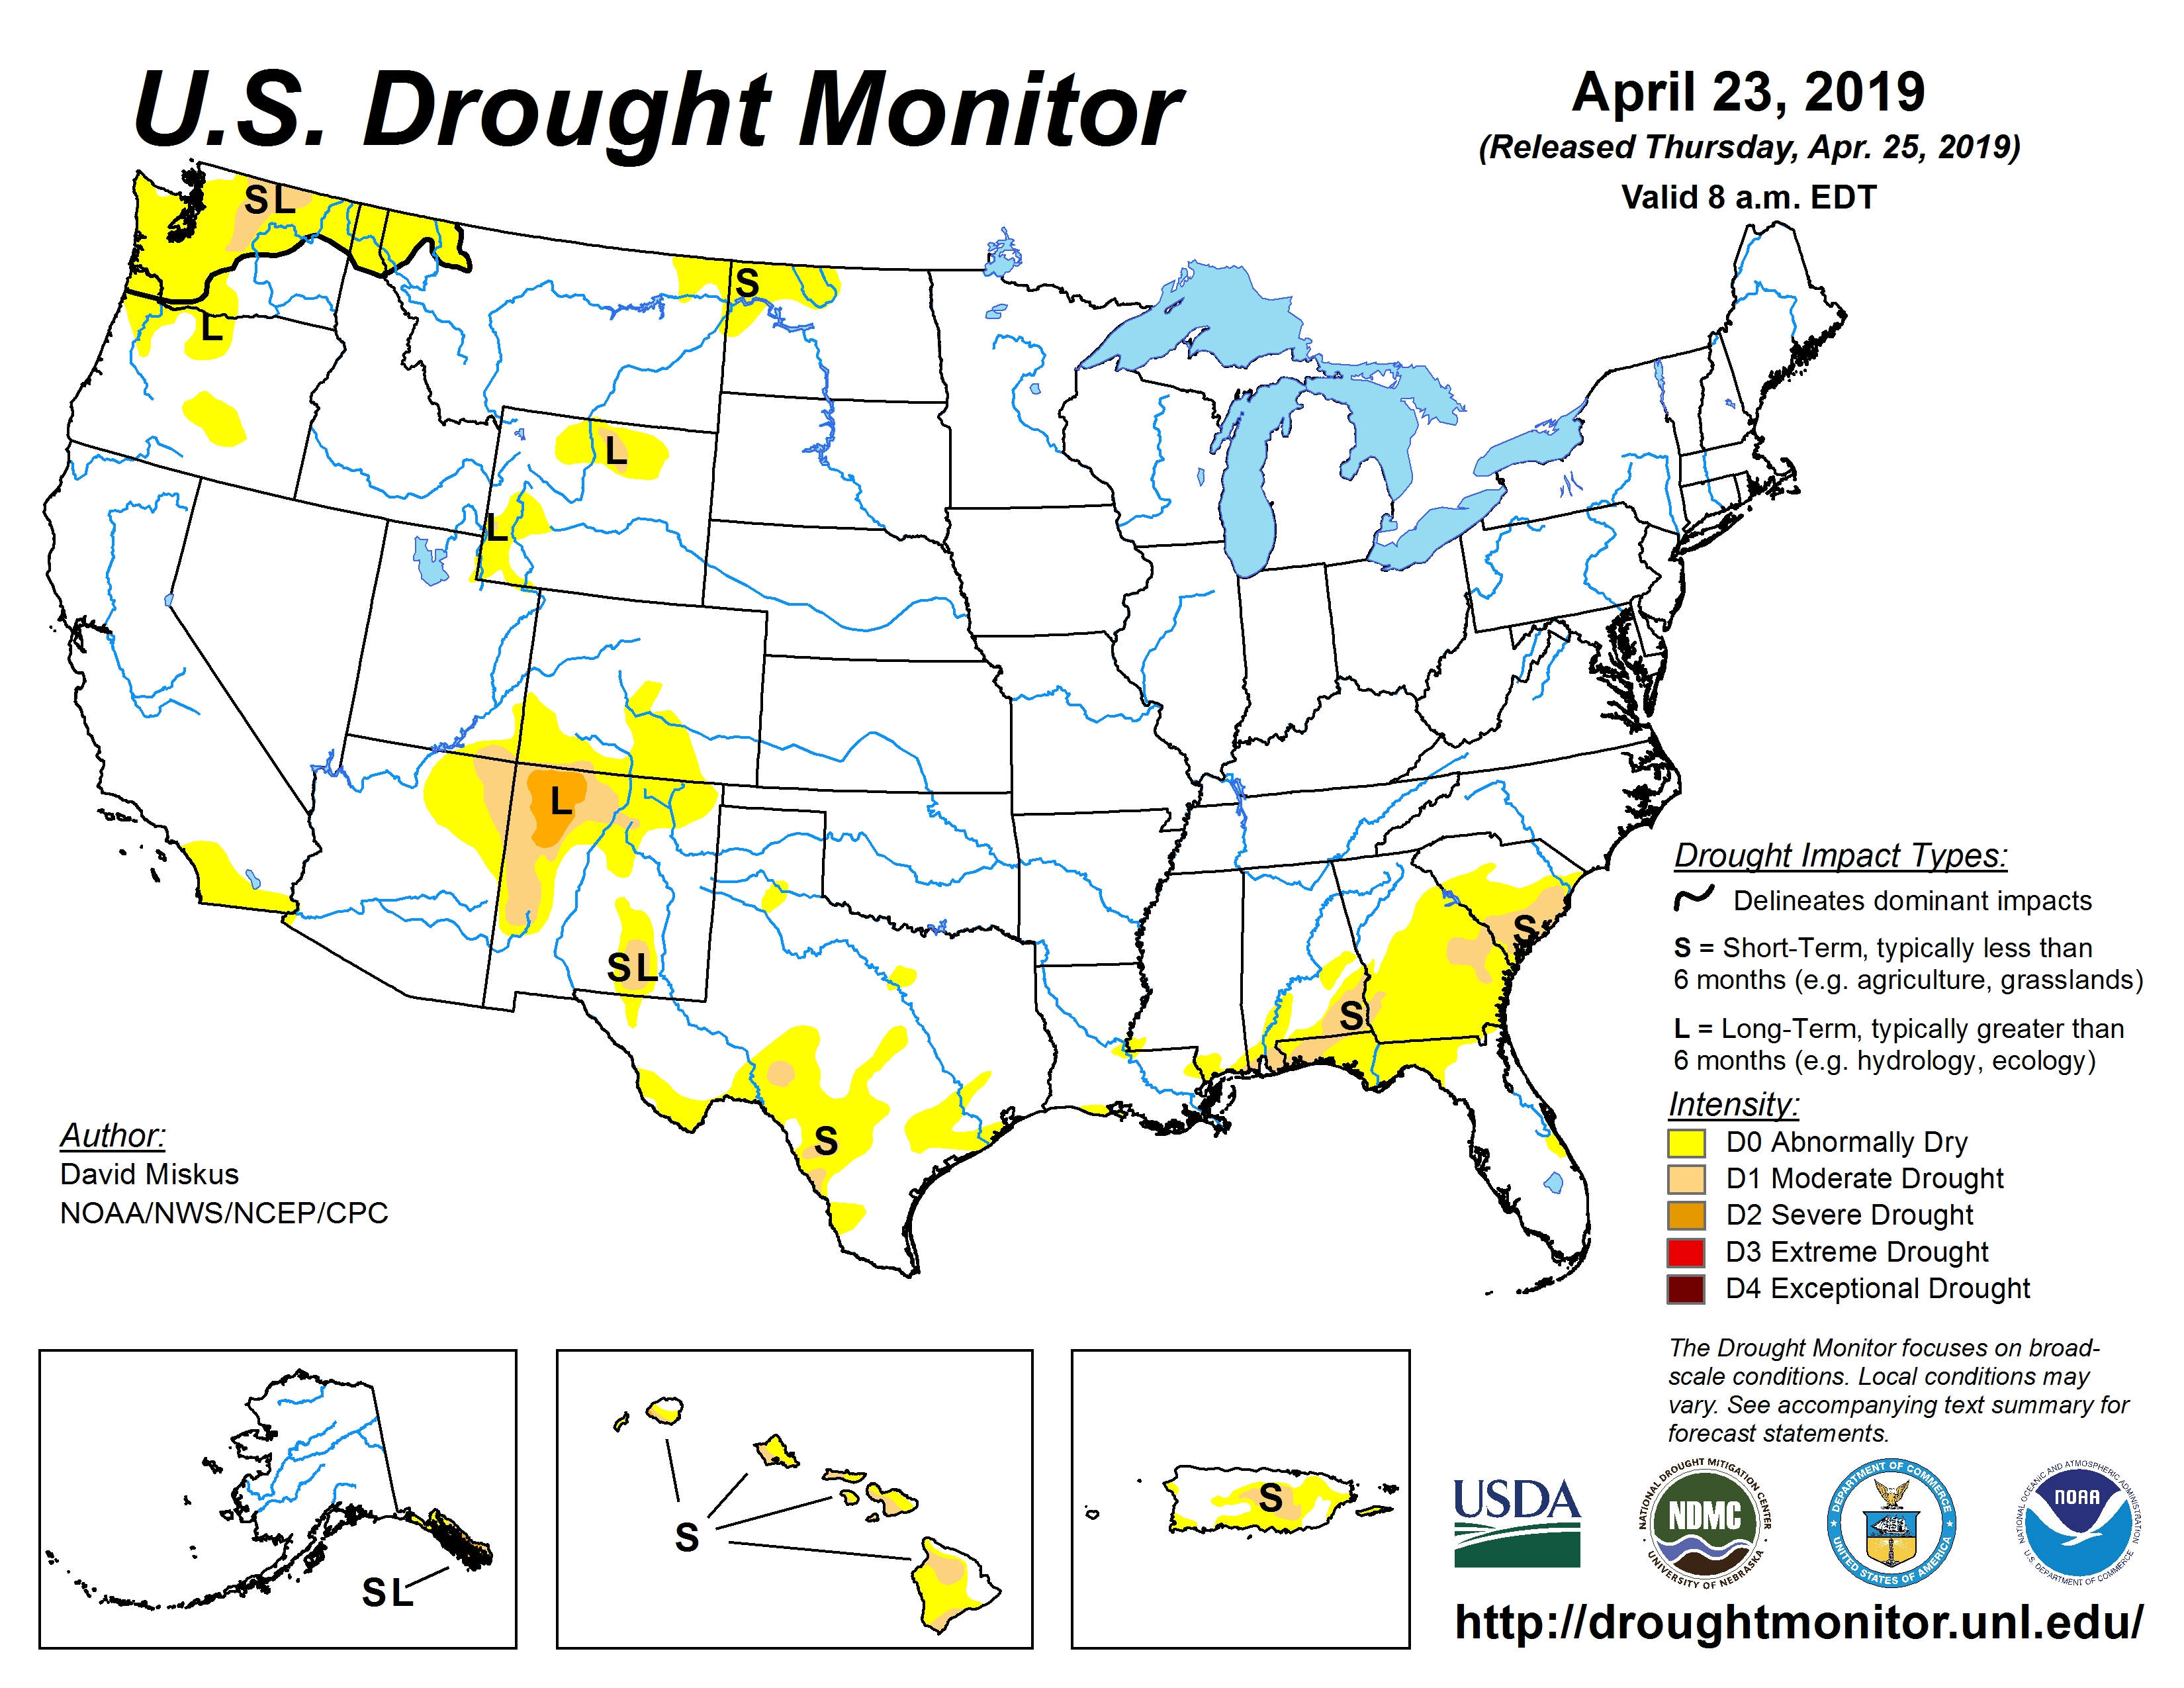 April 23, 2019 Drought Monitor map